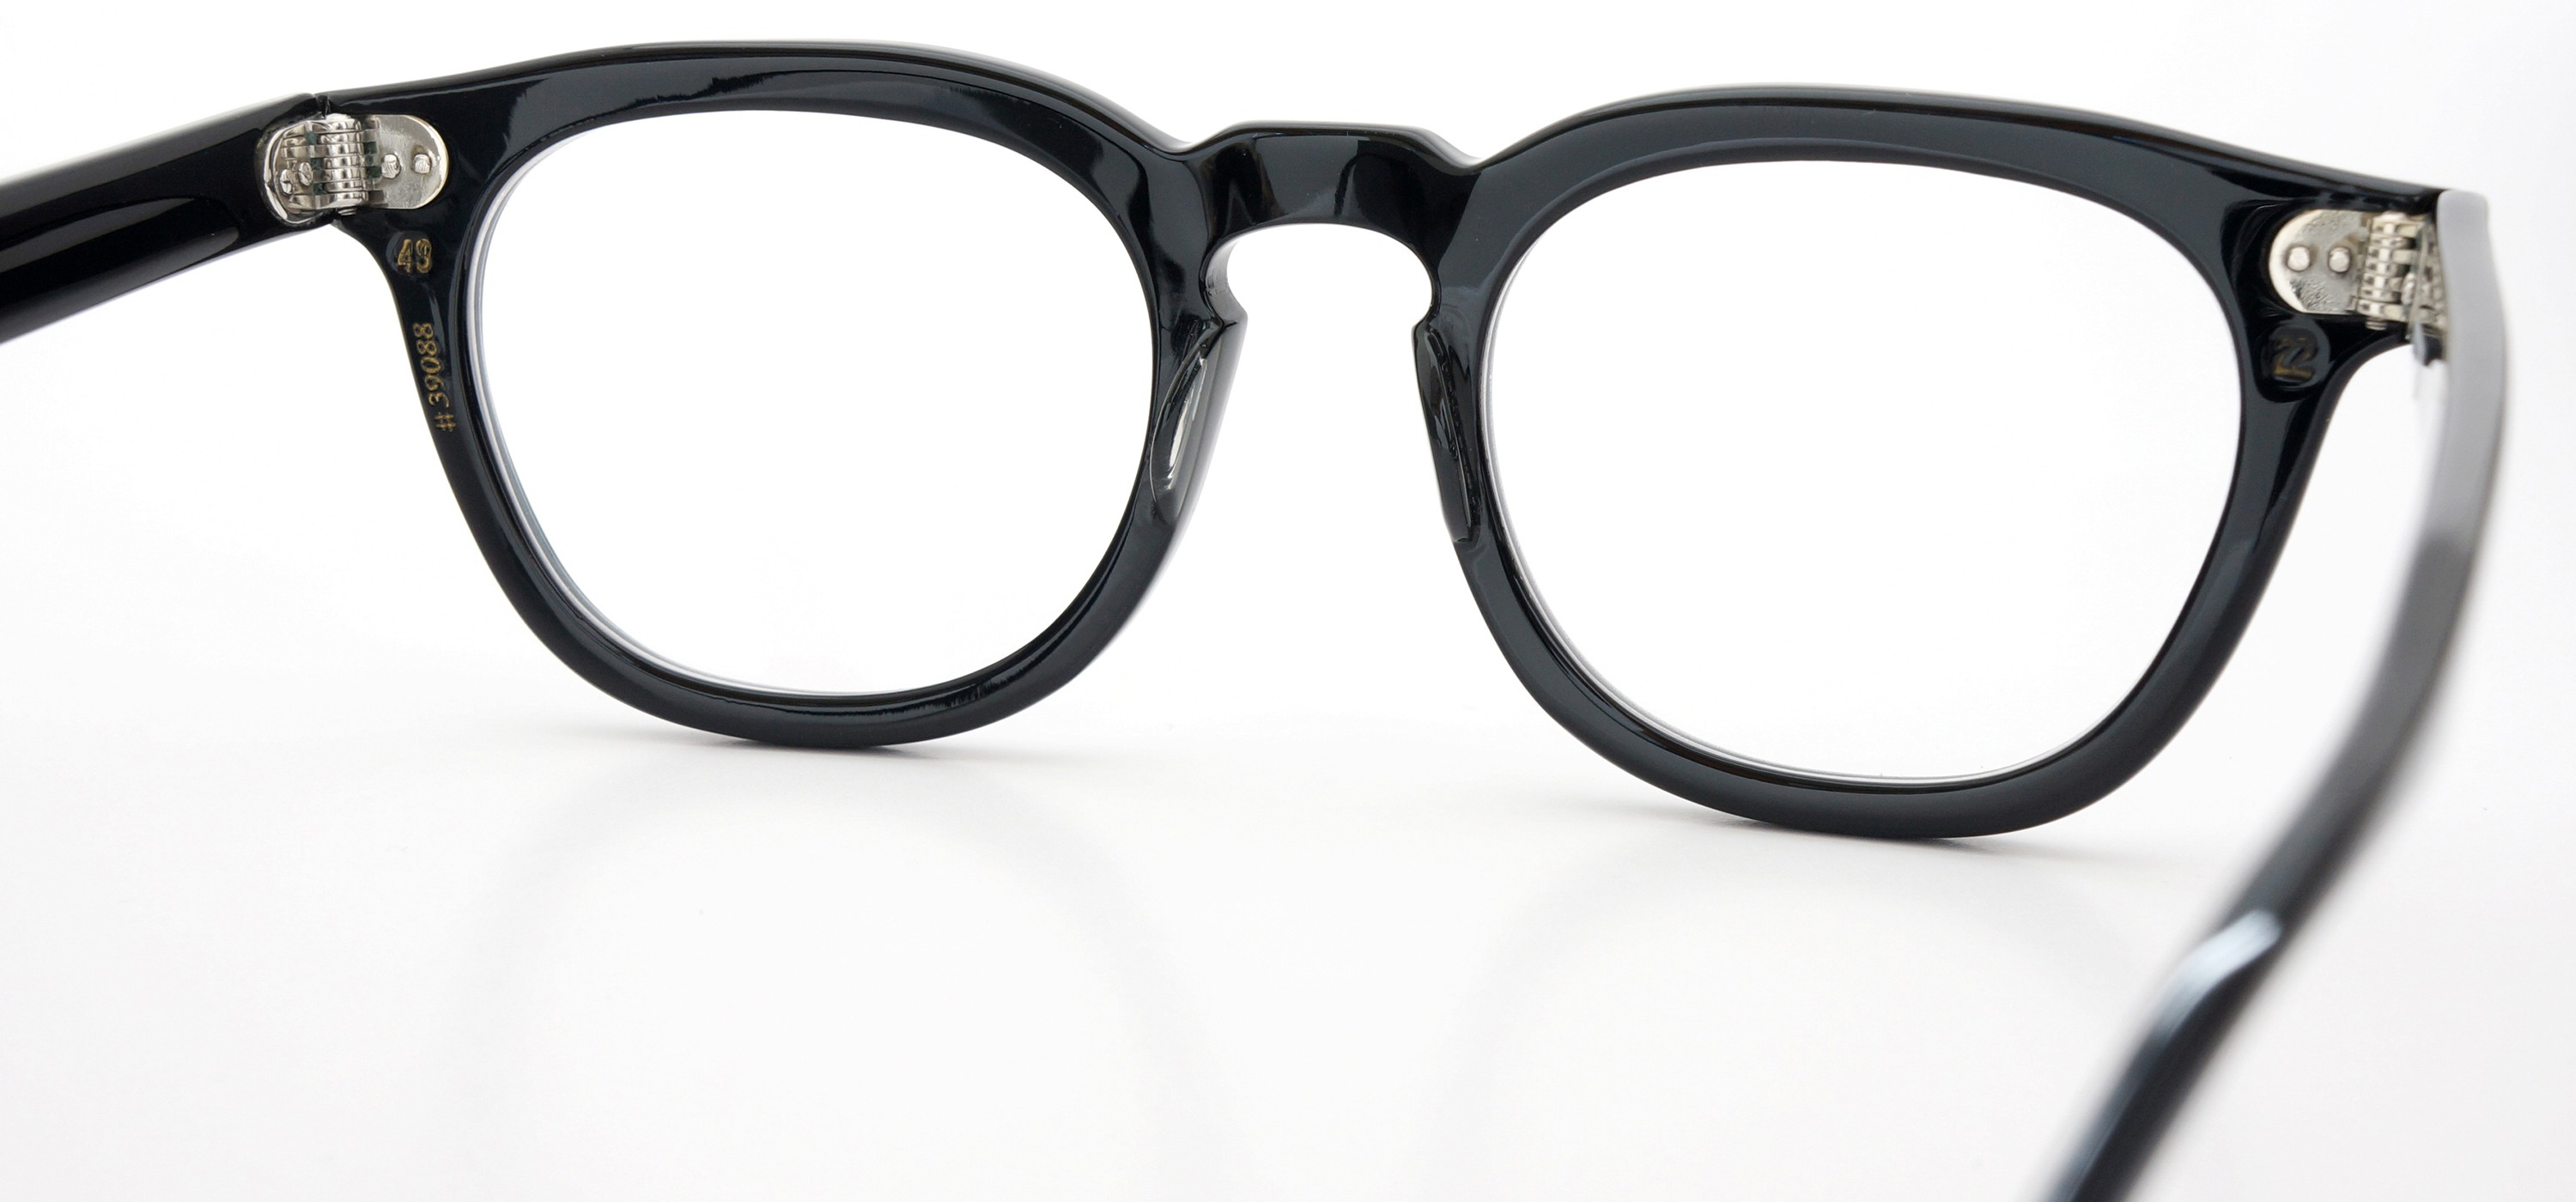 The Spectacle メガネ 1950s-70s TART OPTICAL ARNEL(FRAME USA) BLACK 48-22 イメージ8